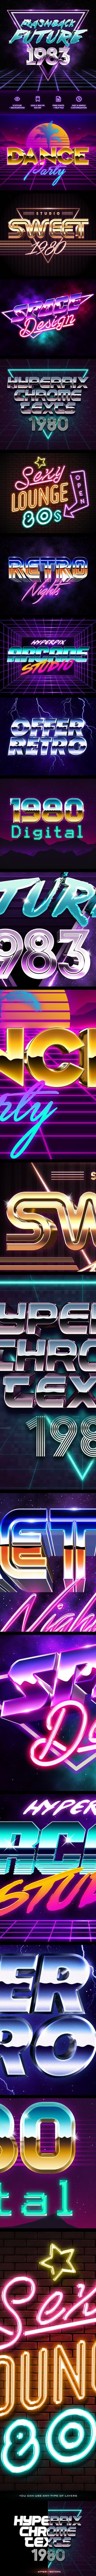 80s Style #Text #Effects - Text Effects #Actions Download here: https://graphicriver.net/item/80s-style-text-generator/19354475?ref=alena994